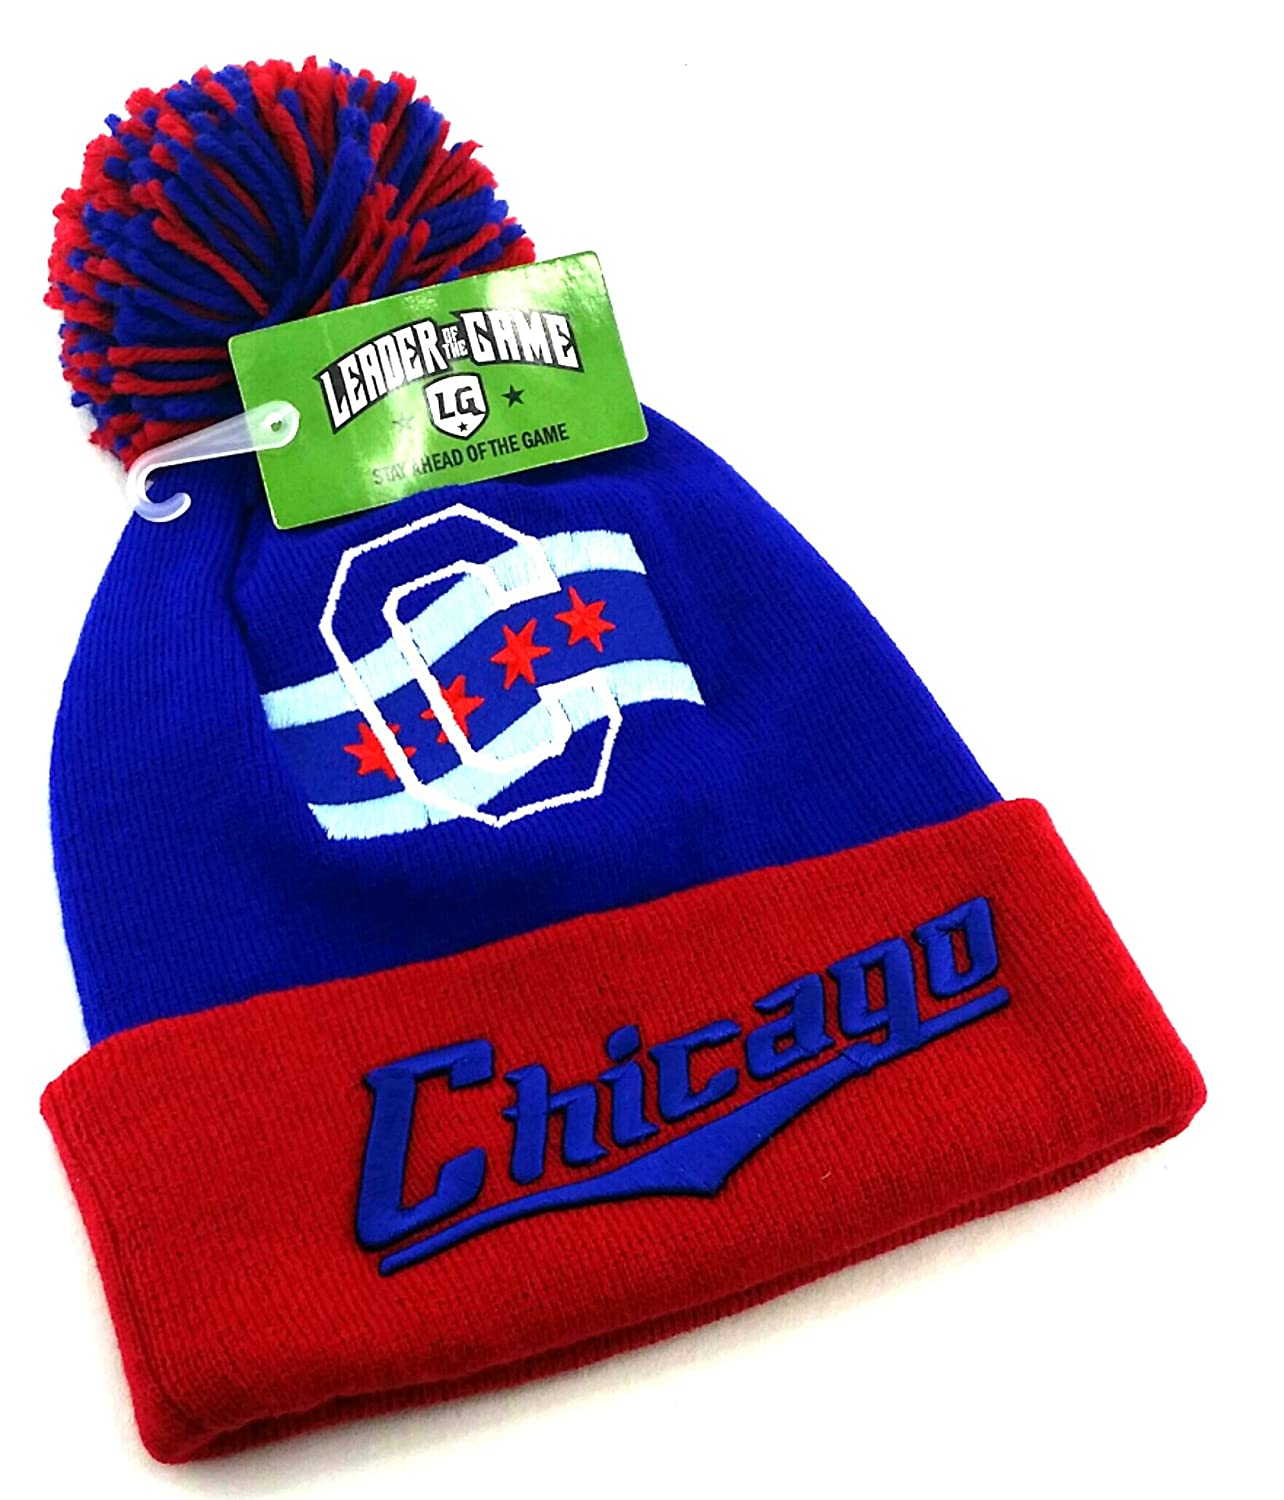 4ce14be02b0 Amazon.com  Leader of the Game Chicago Top Pro New Knit Beanie Toque Pom  City of Flag Cubs Colors Blue Red Era Hat Cap  Sports   Outdoors